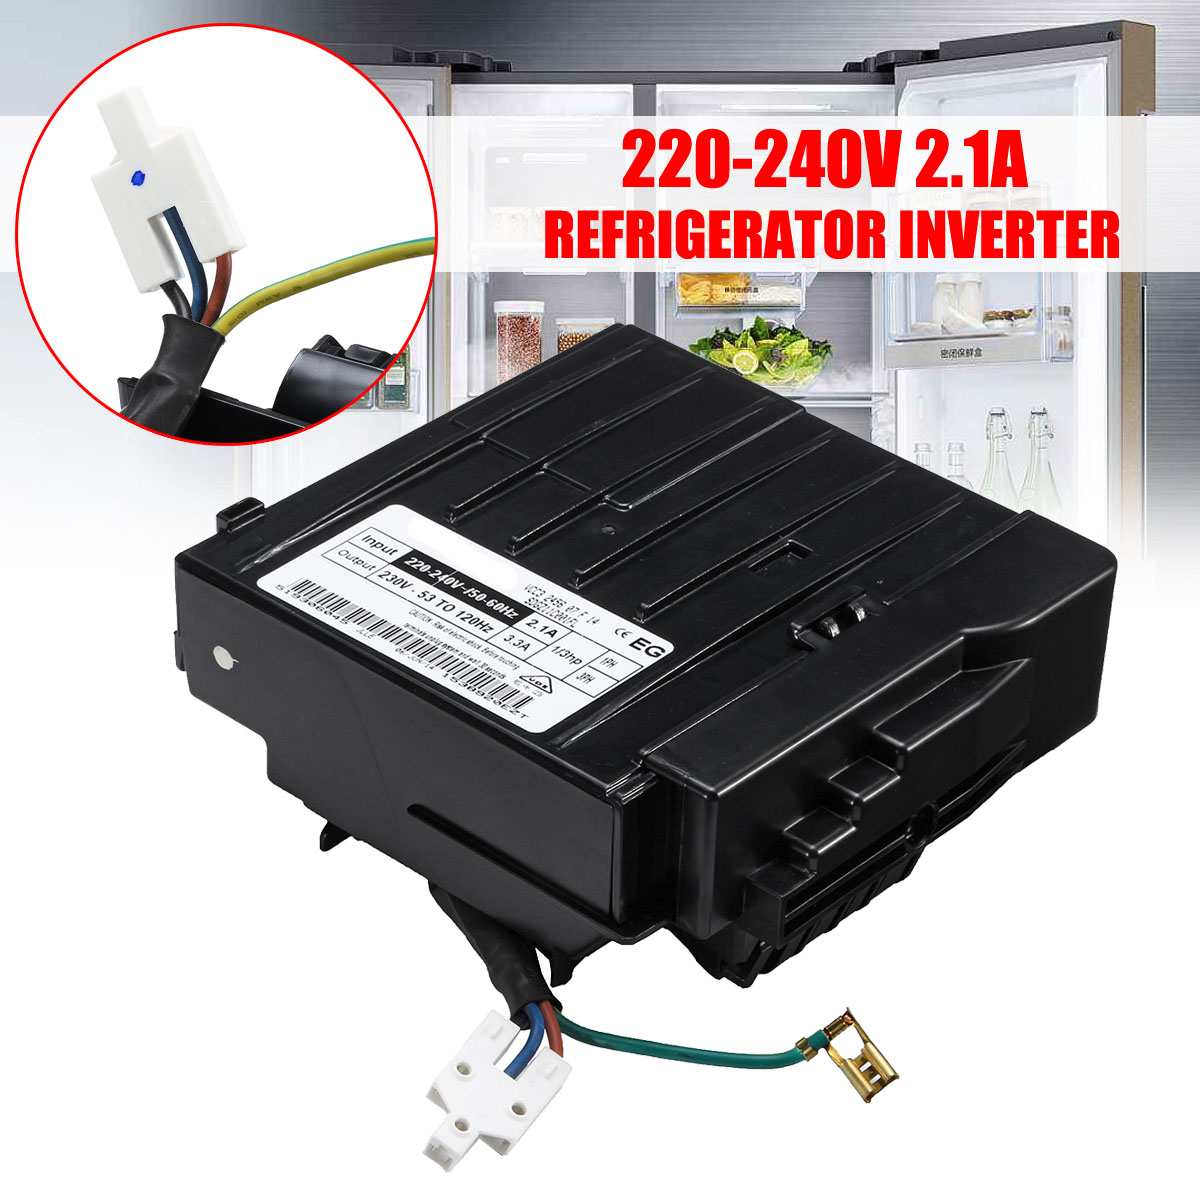 220-240V 2.1A 3PH Refrigerator Inverter VCC3 2456 07 Control Inverter Board For Haier For Siemens Fridge Inverter